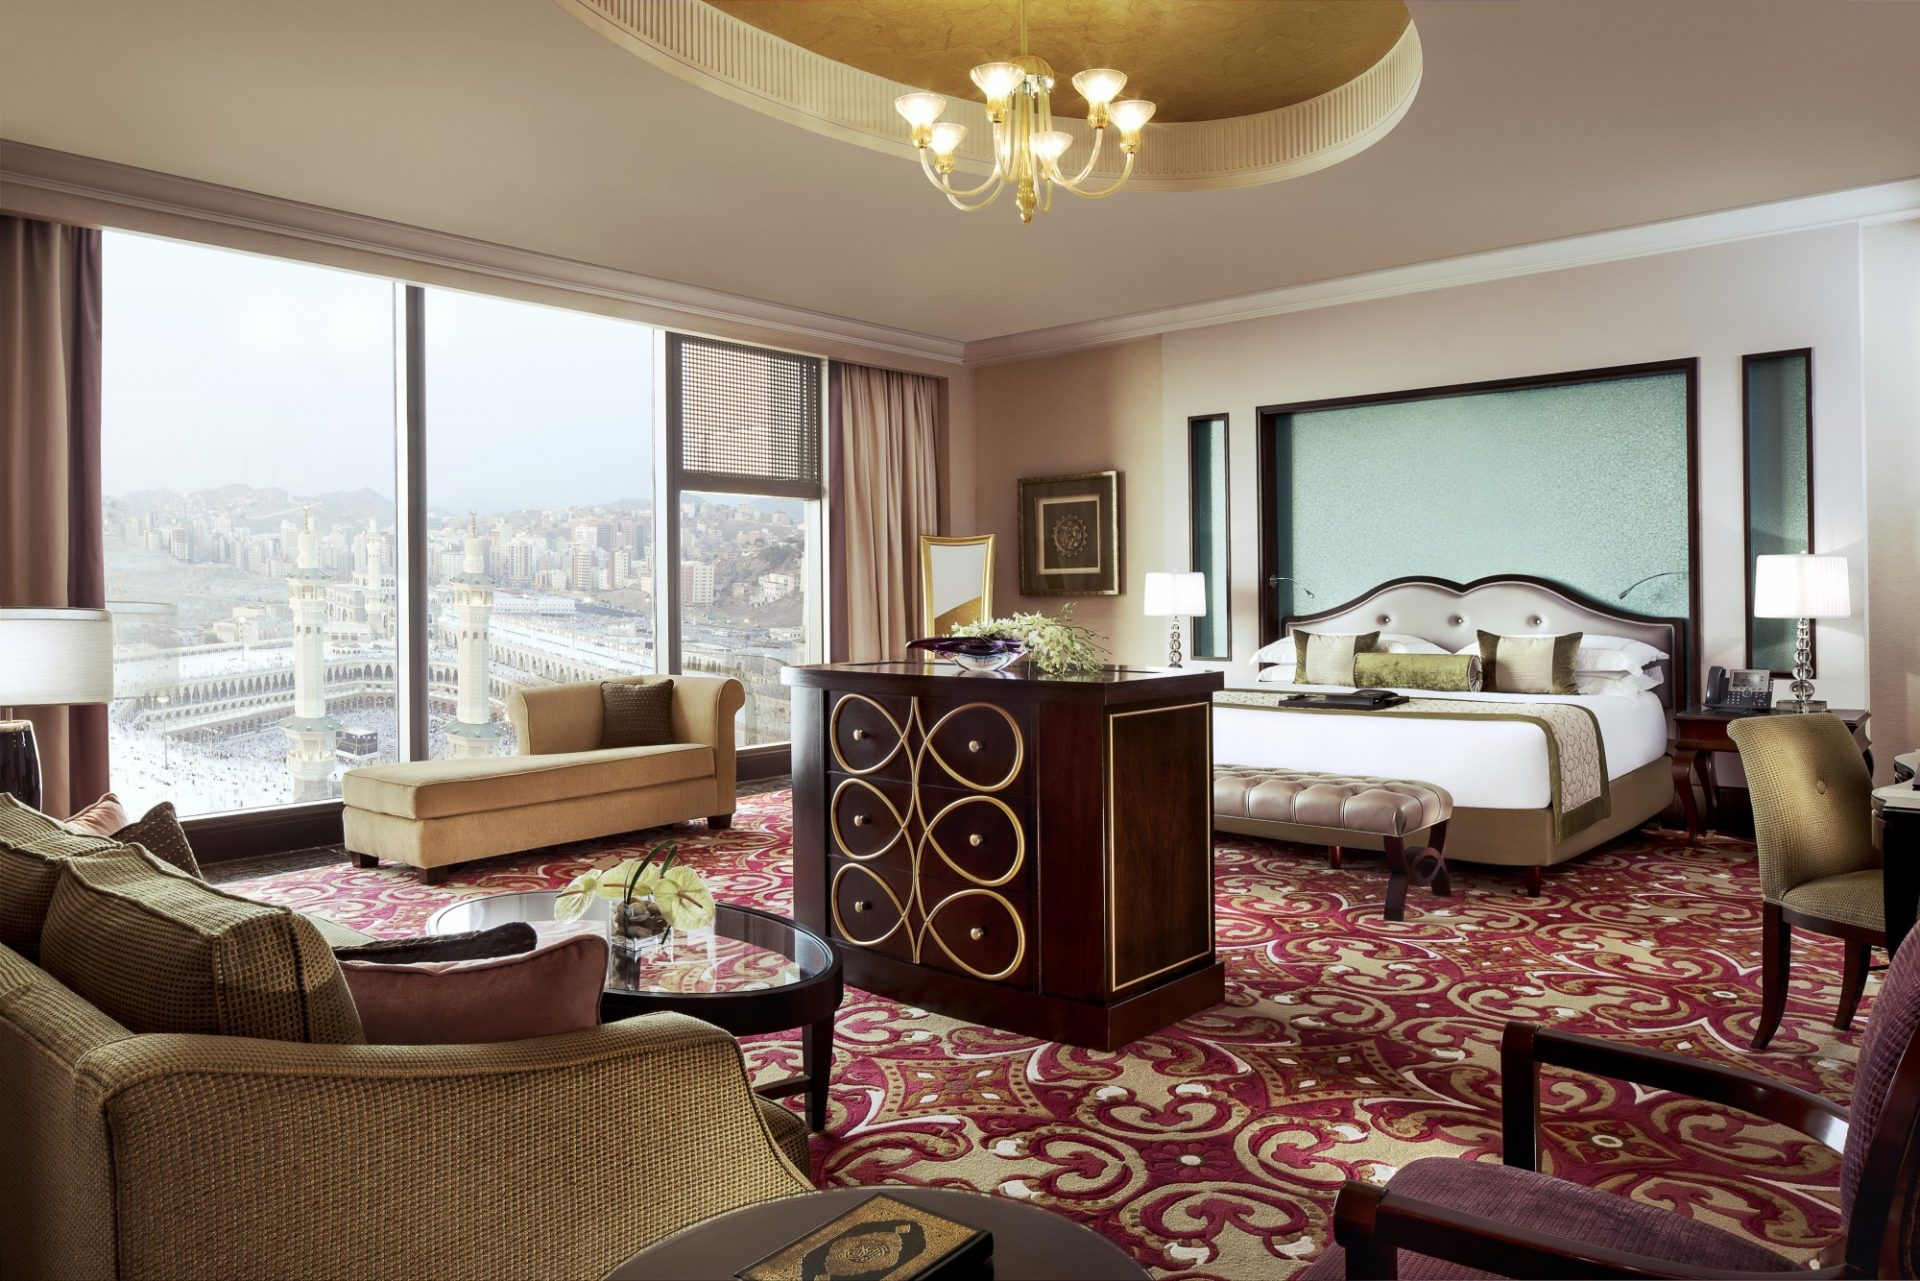 Fairmont_Makkah_Royal_Suite_Bedroom_490503_standard